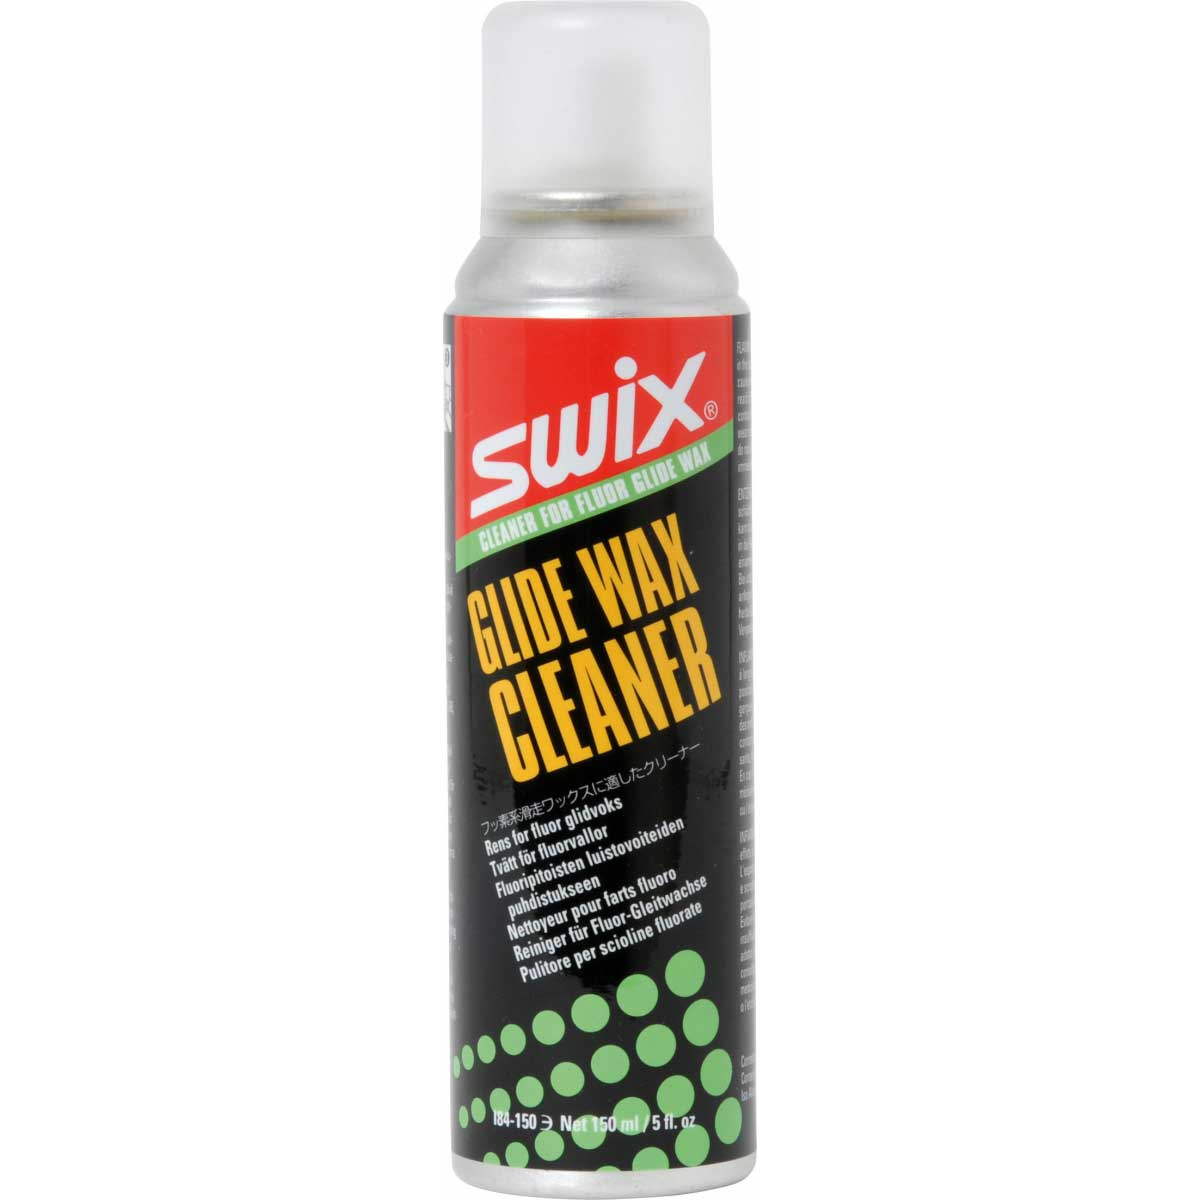 Swix I84 Cleaner Fluoro Glidewax in 150ml size